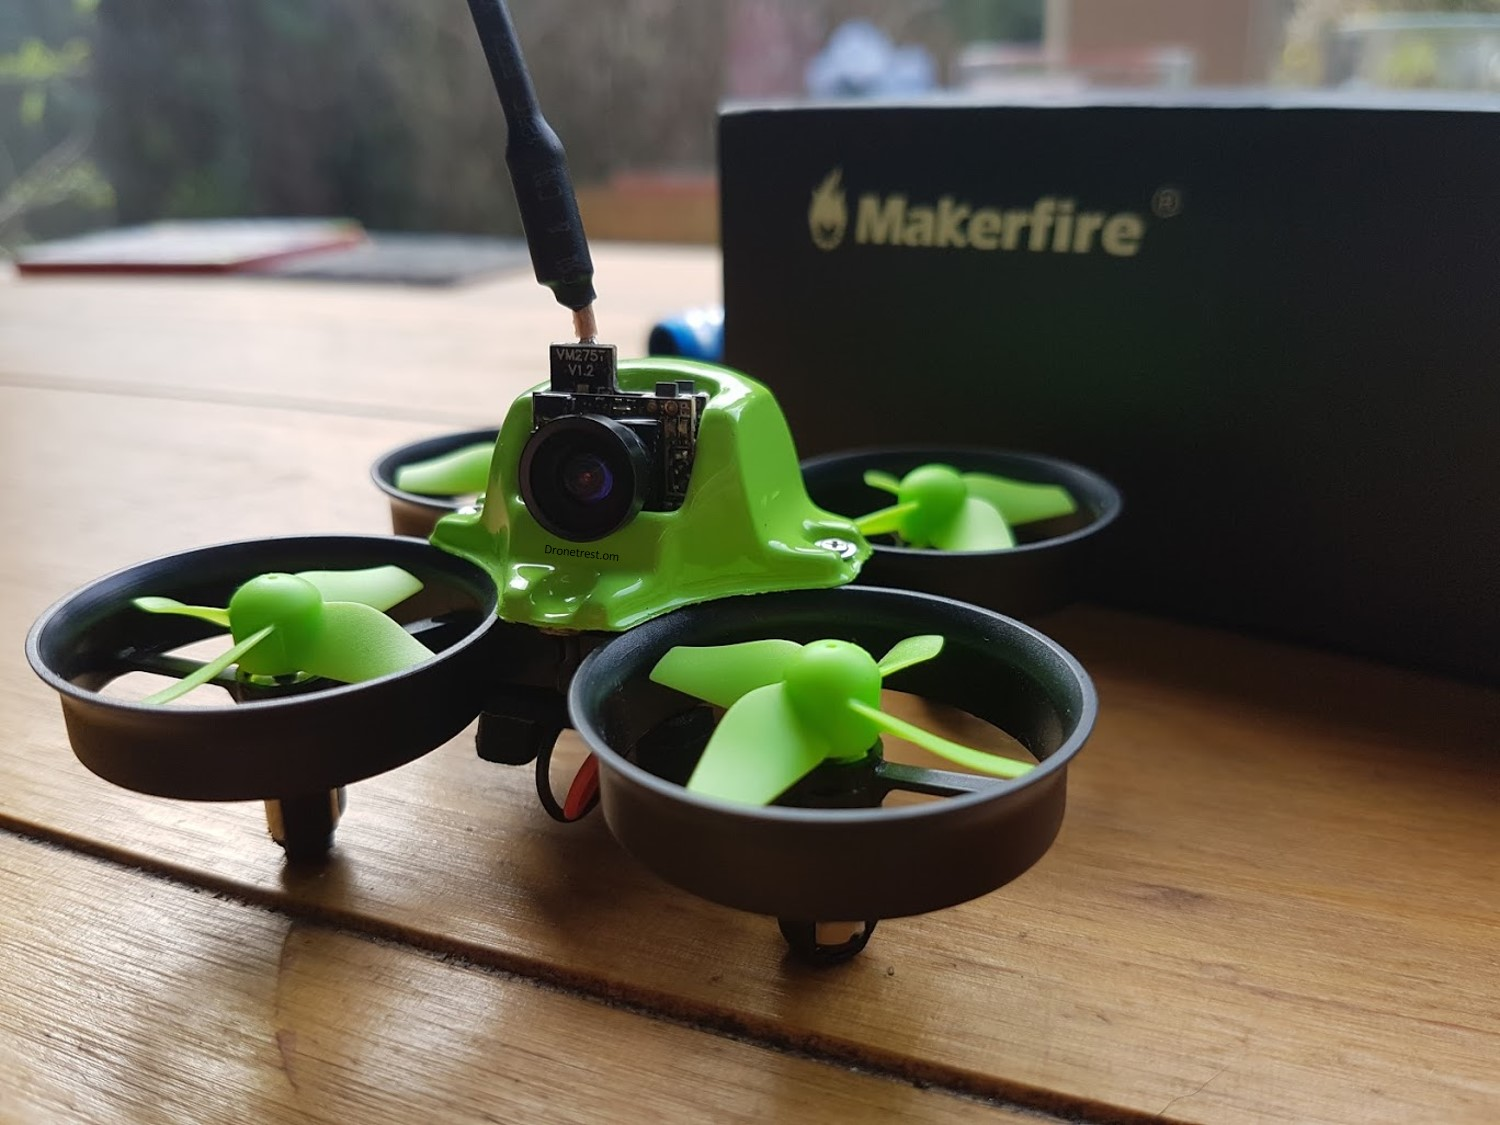 MakerFire TinyWhoop Review and Giveaway